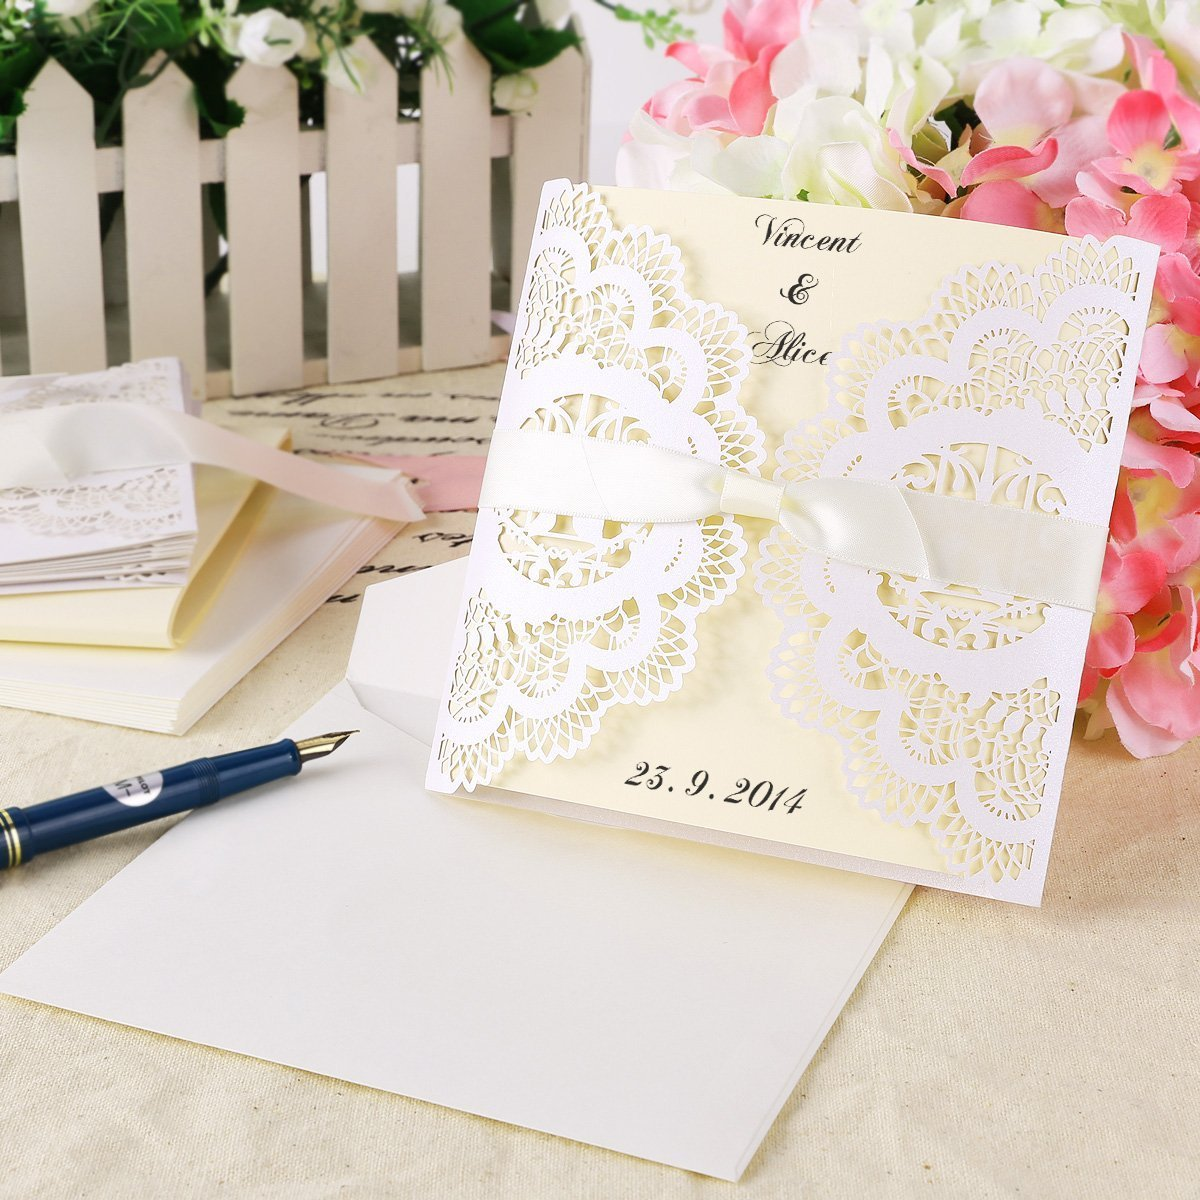 Wedding Invitations Invite Lace Laser Cut Out Effect Blank Cards W  Envelopes Vintage Ribbon Tie Bow